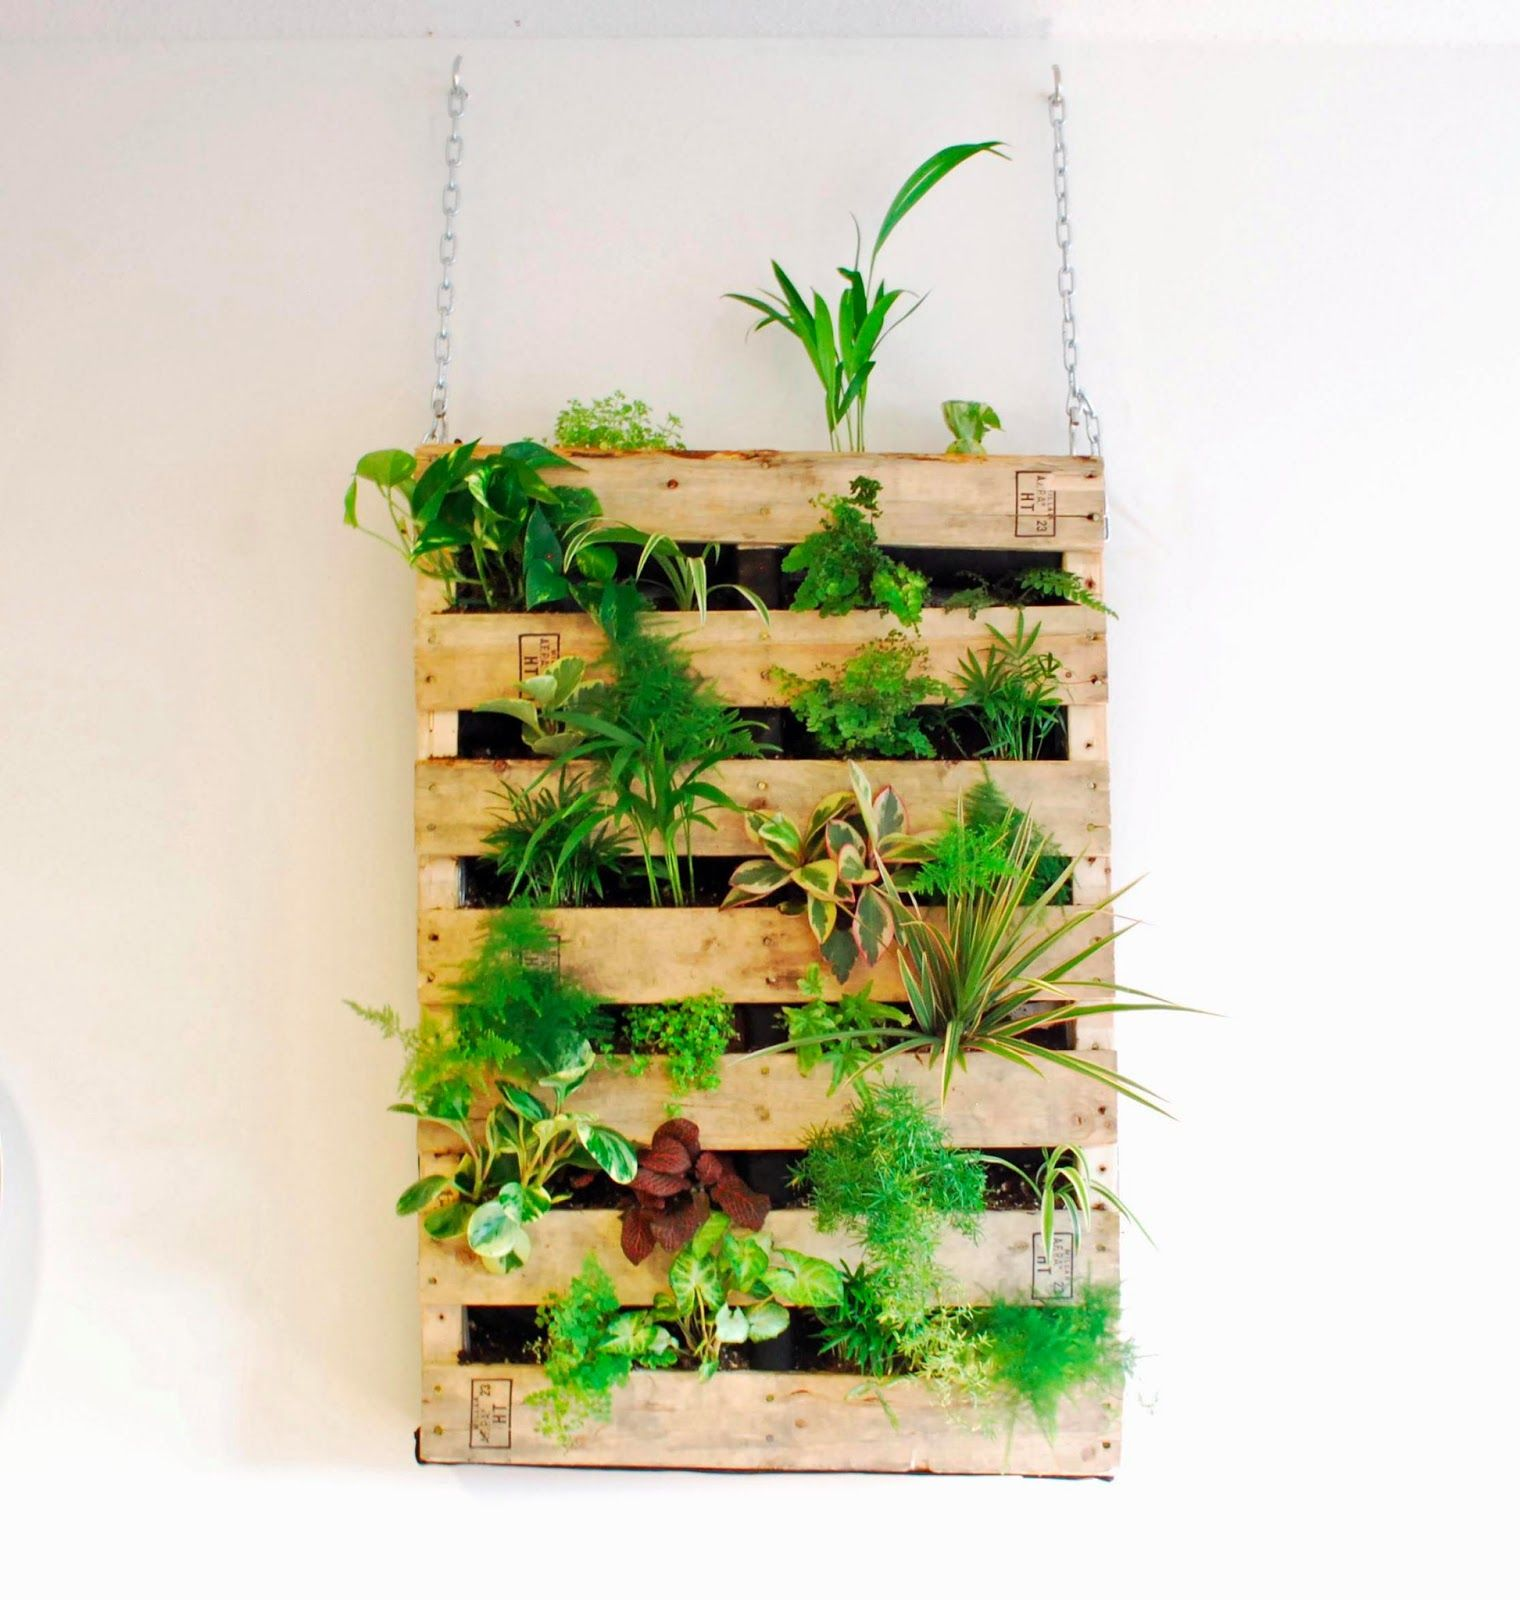 Tutorial - Awesome Indoor Living Wall Vertical Garden